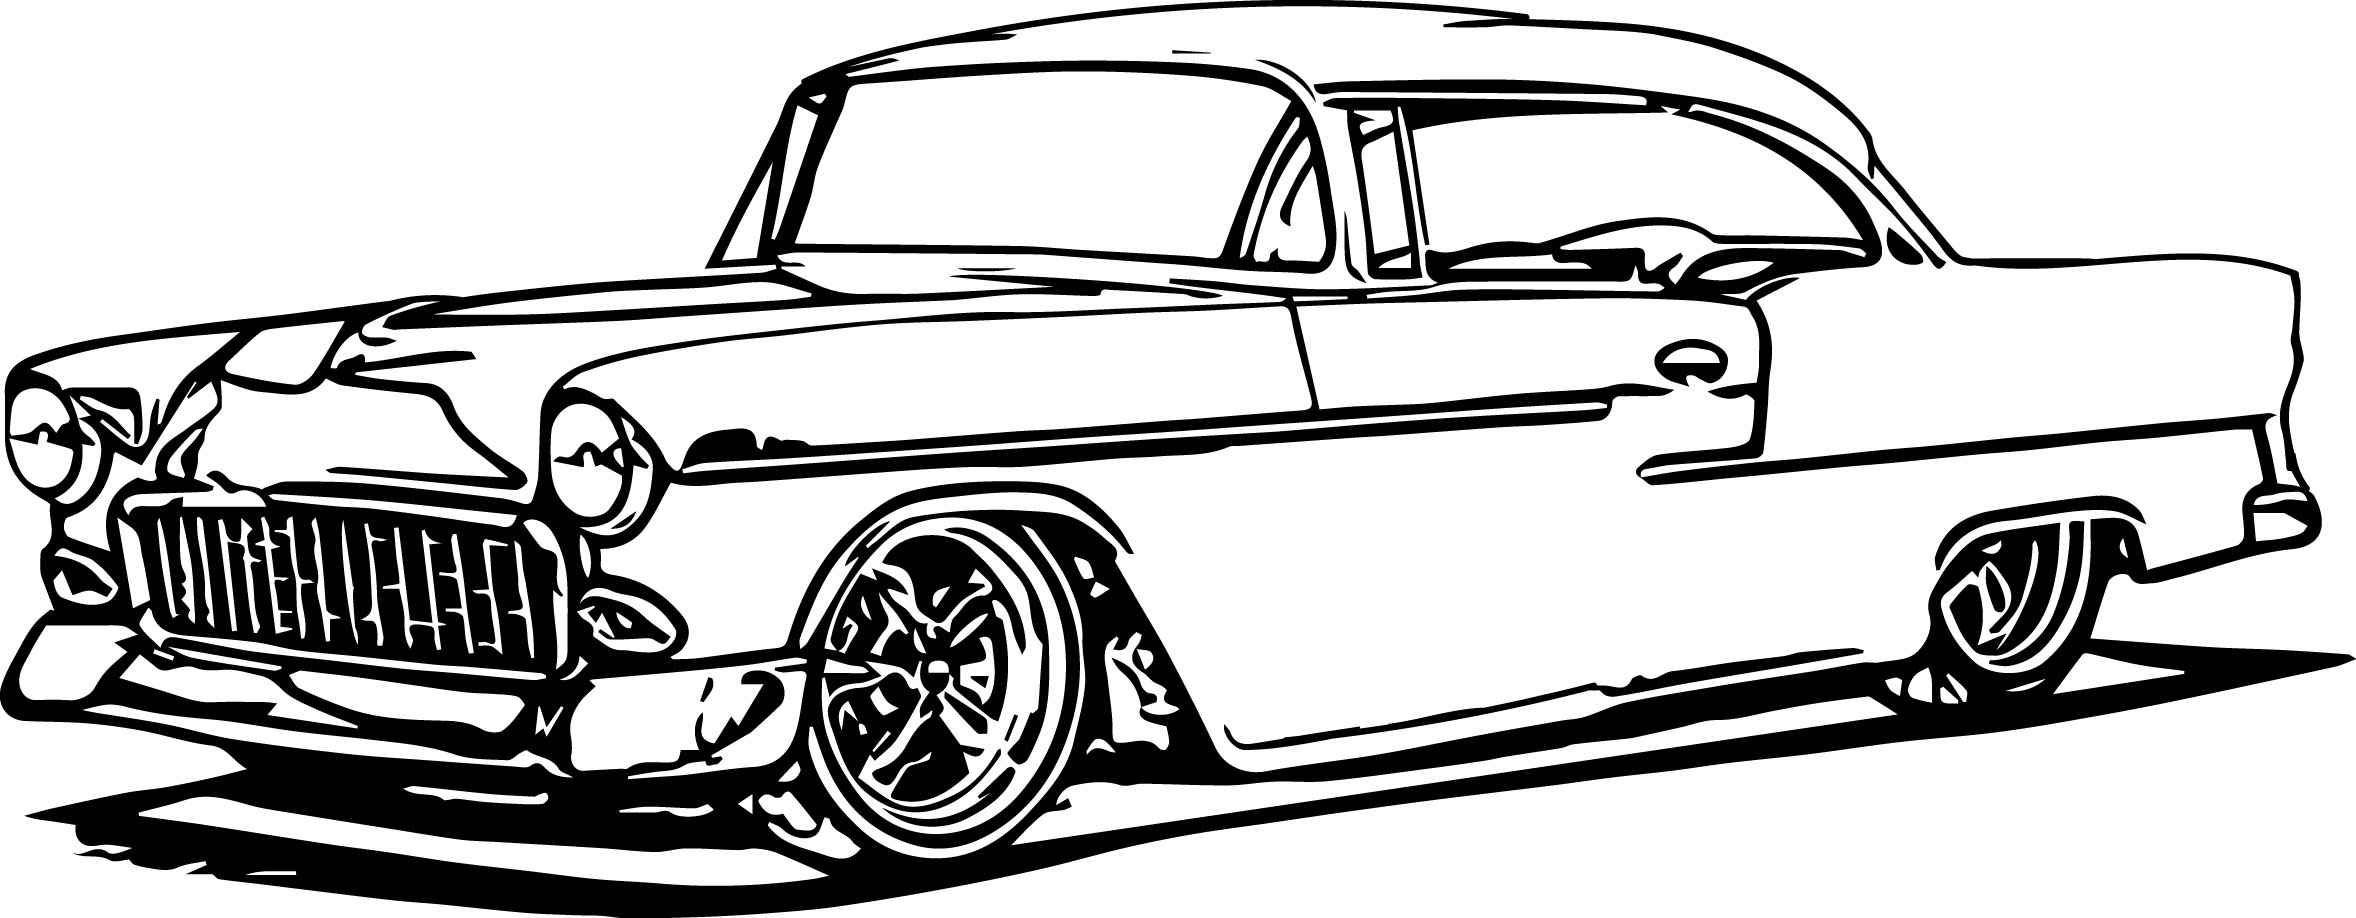 Coloring Pages Classic Cars Free Cars Coloring Pages Truck Coloring Pages Race Car Coloring Pages